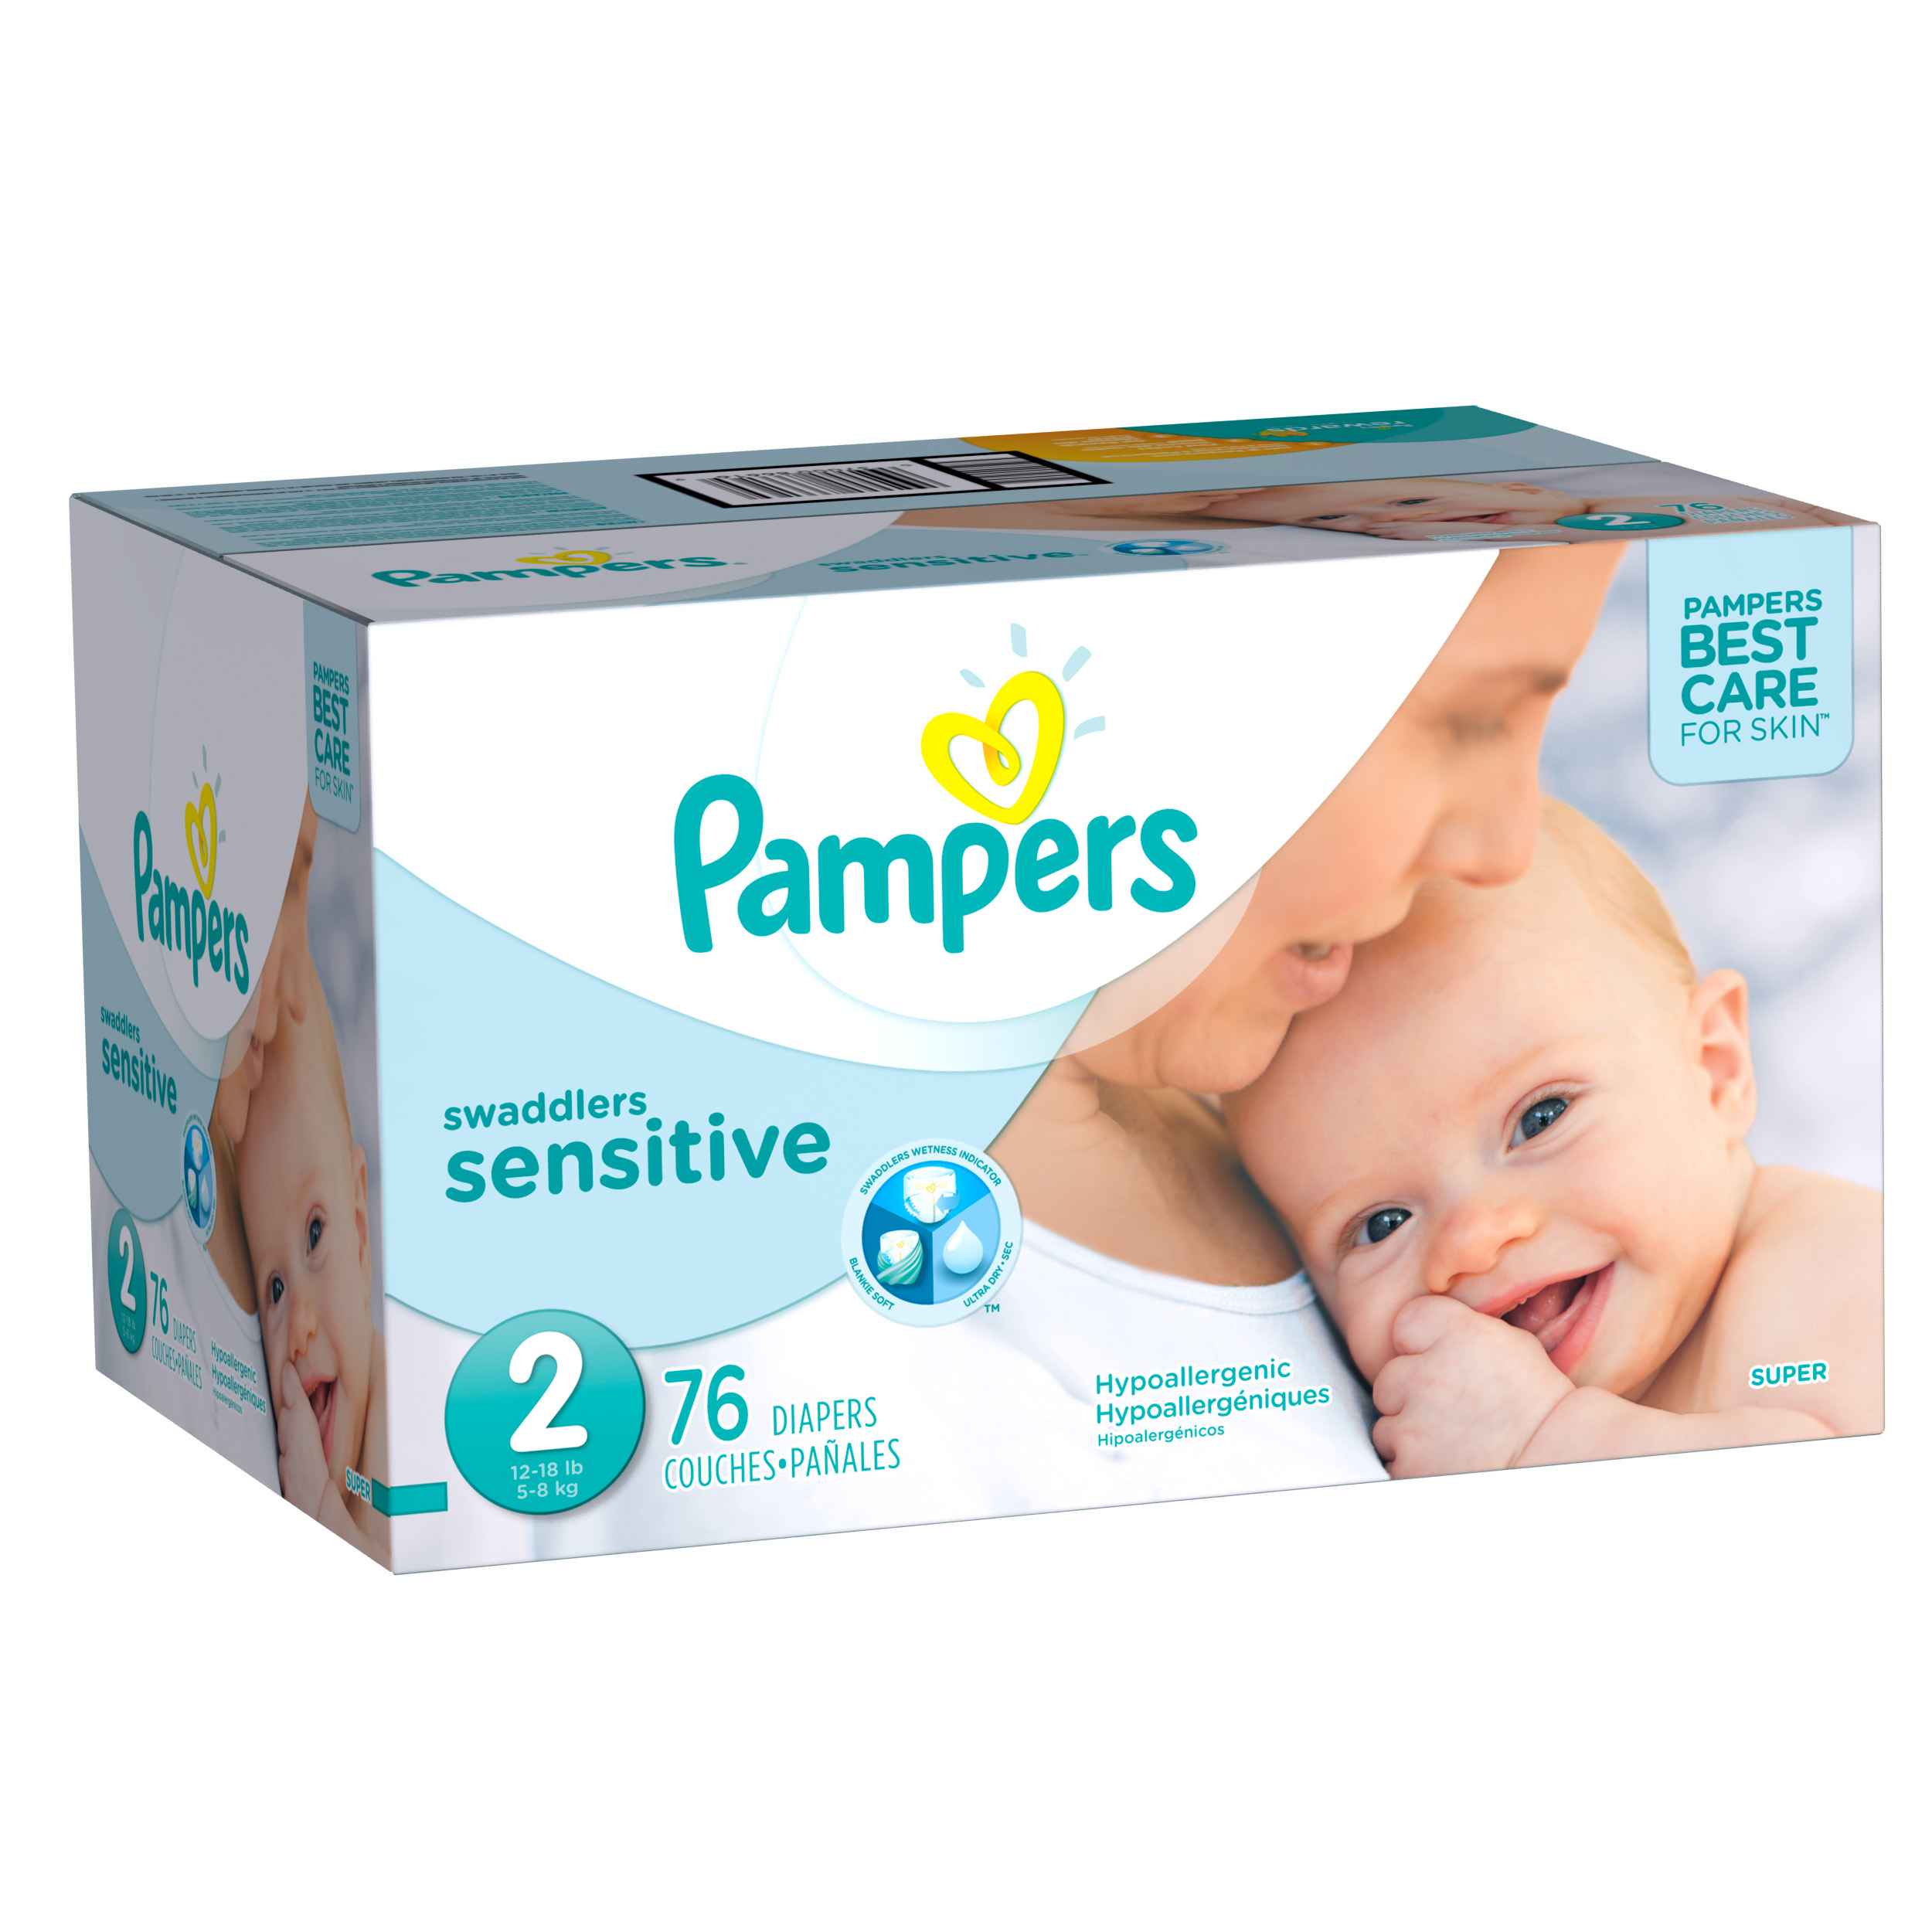 Pampers Swaddlers Sensitive Diapers Size 2, 76 count